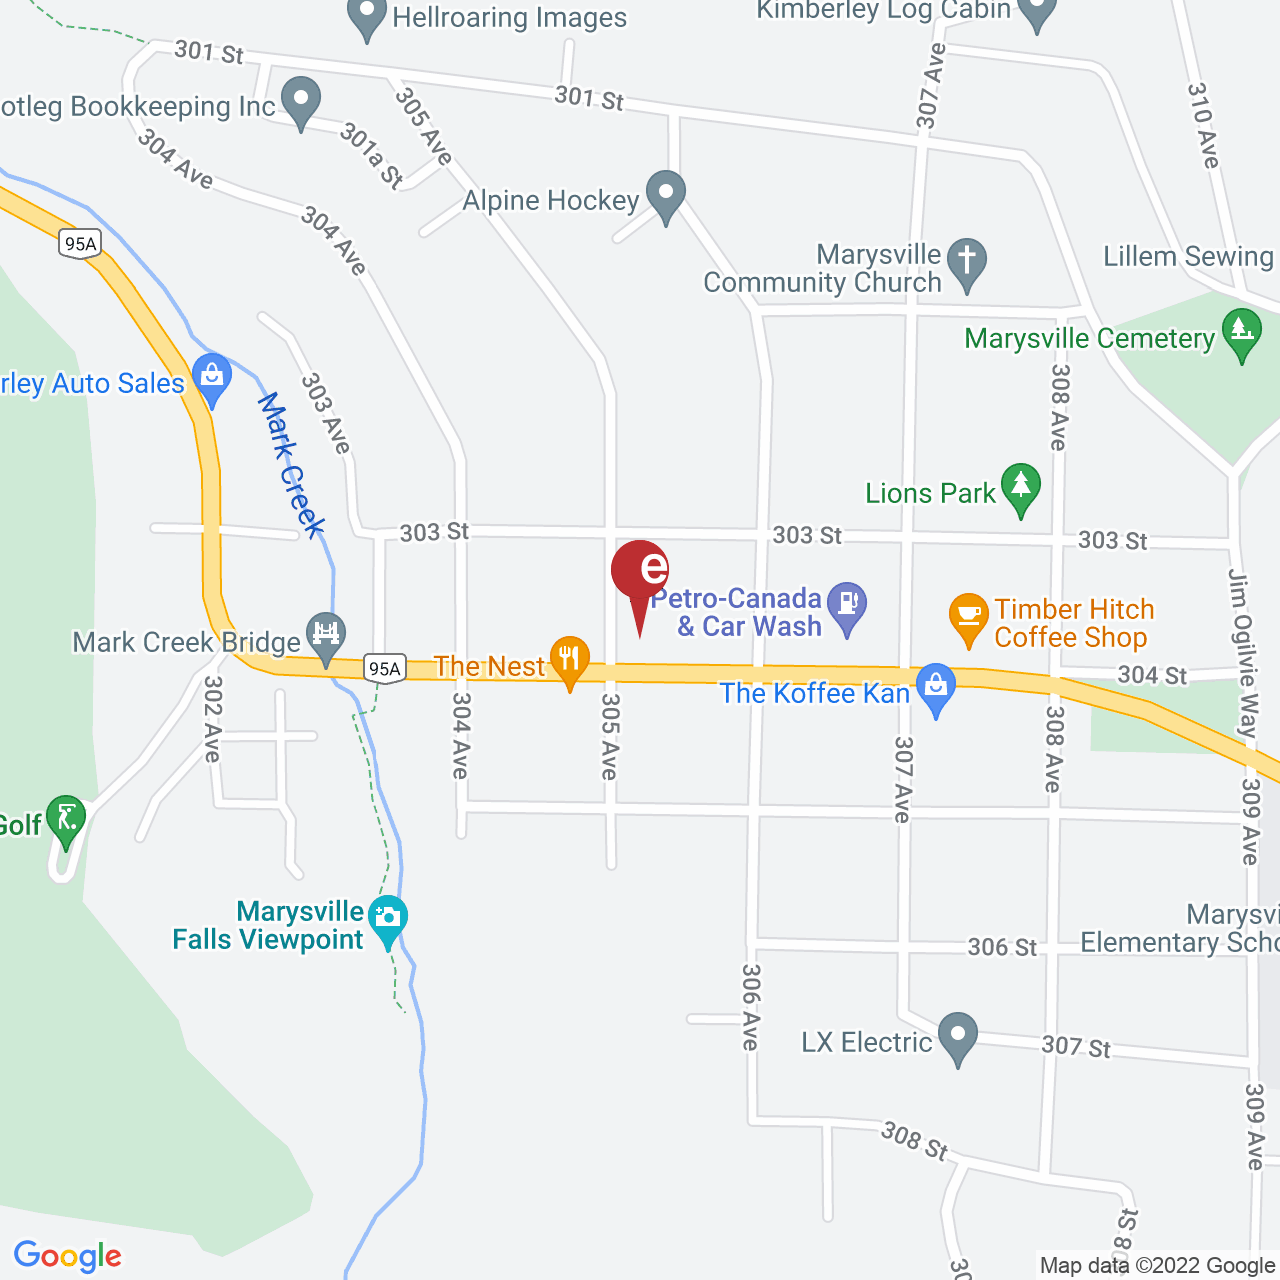 Street map for Tamarack Cannabis Boutique  2-518 304 St, Kimberley BC